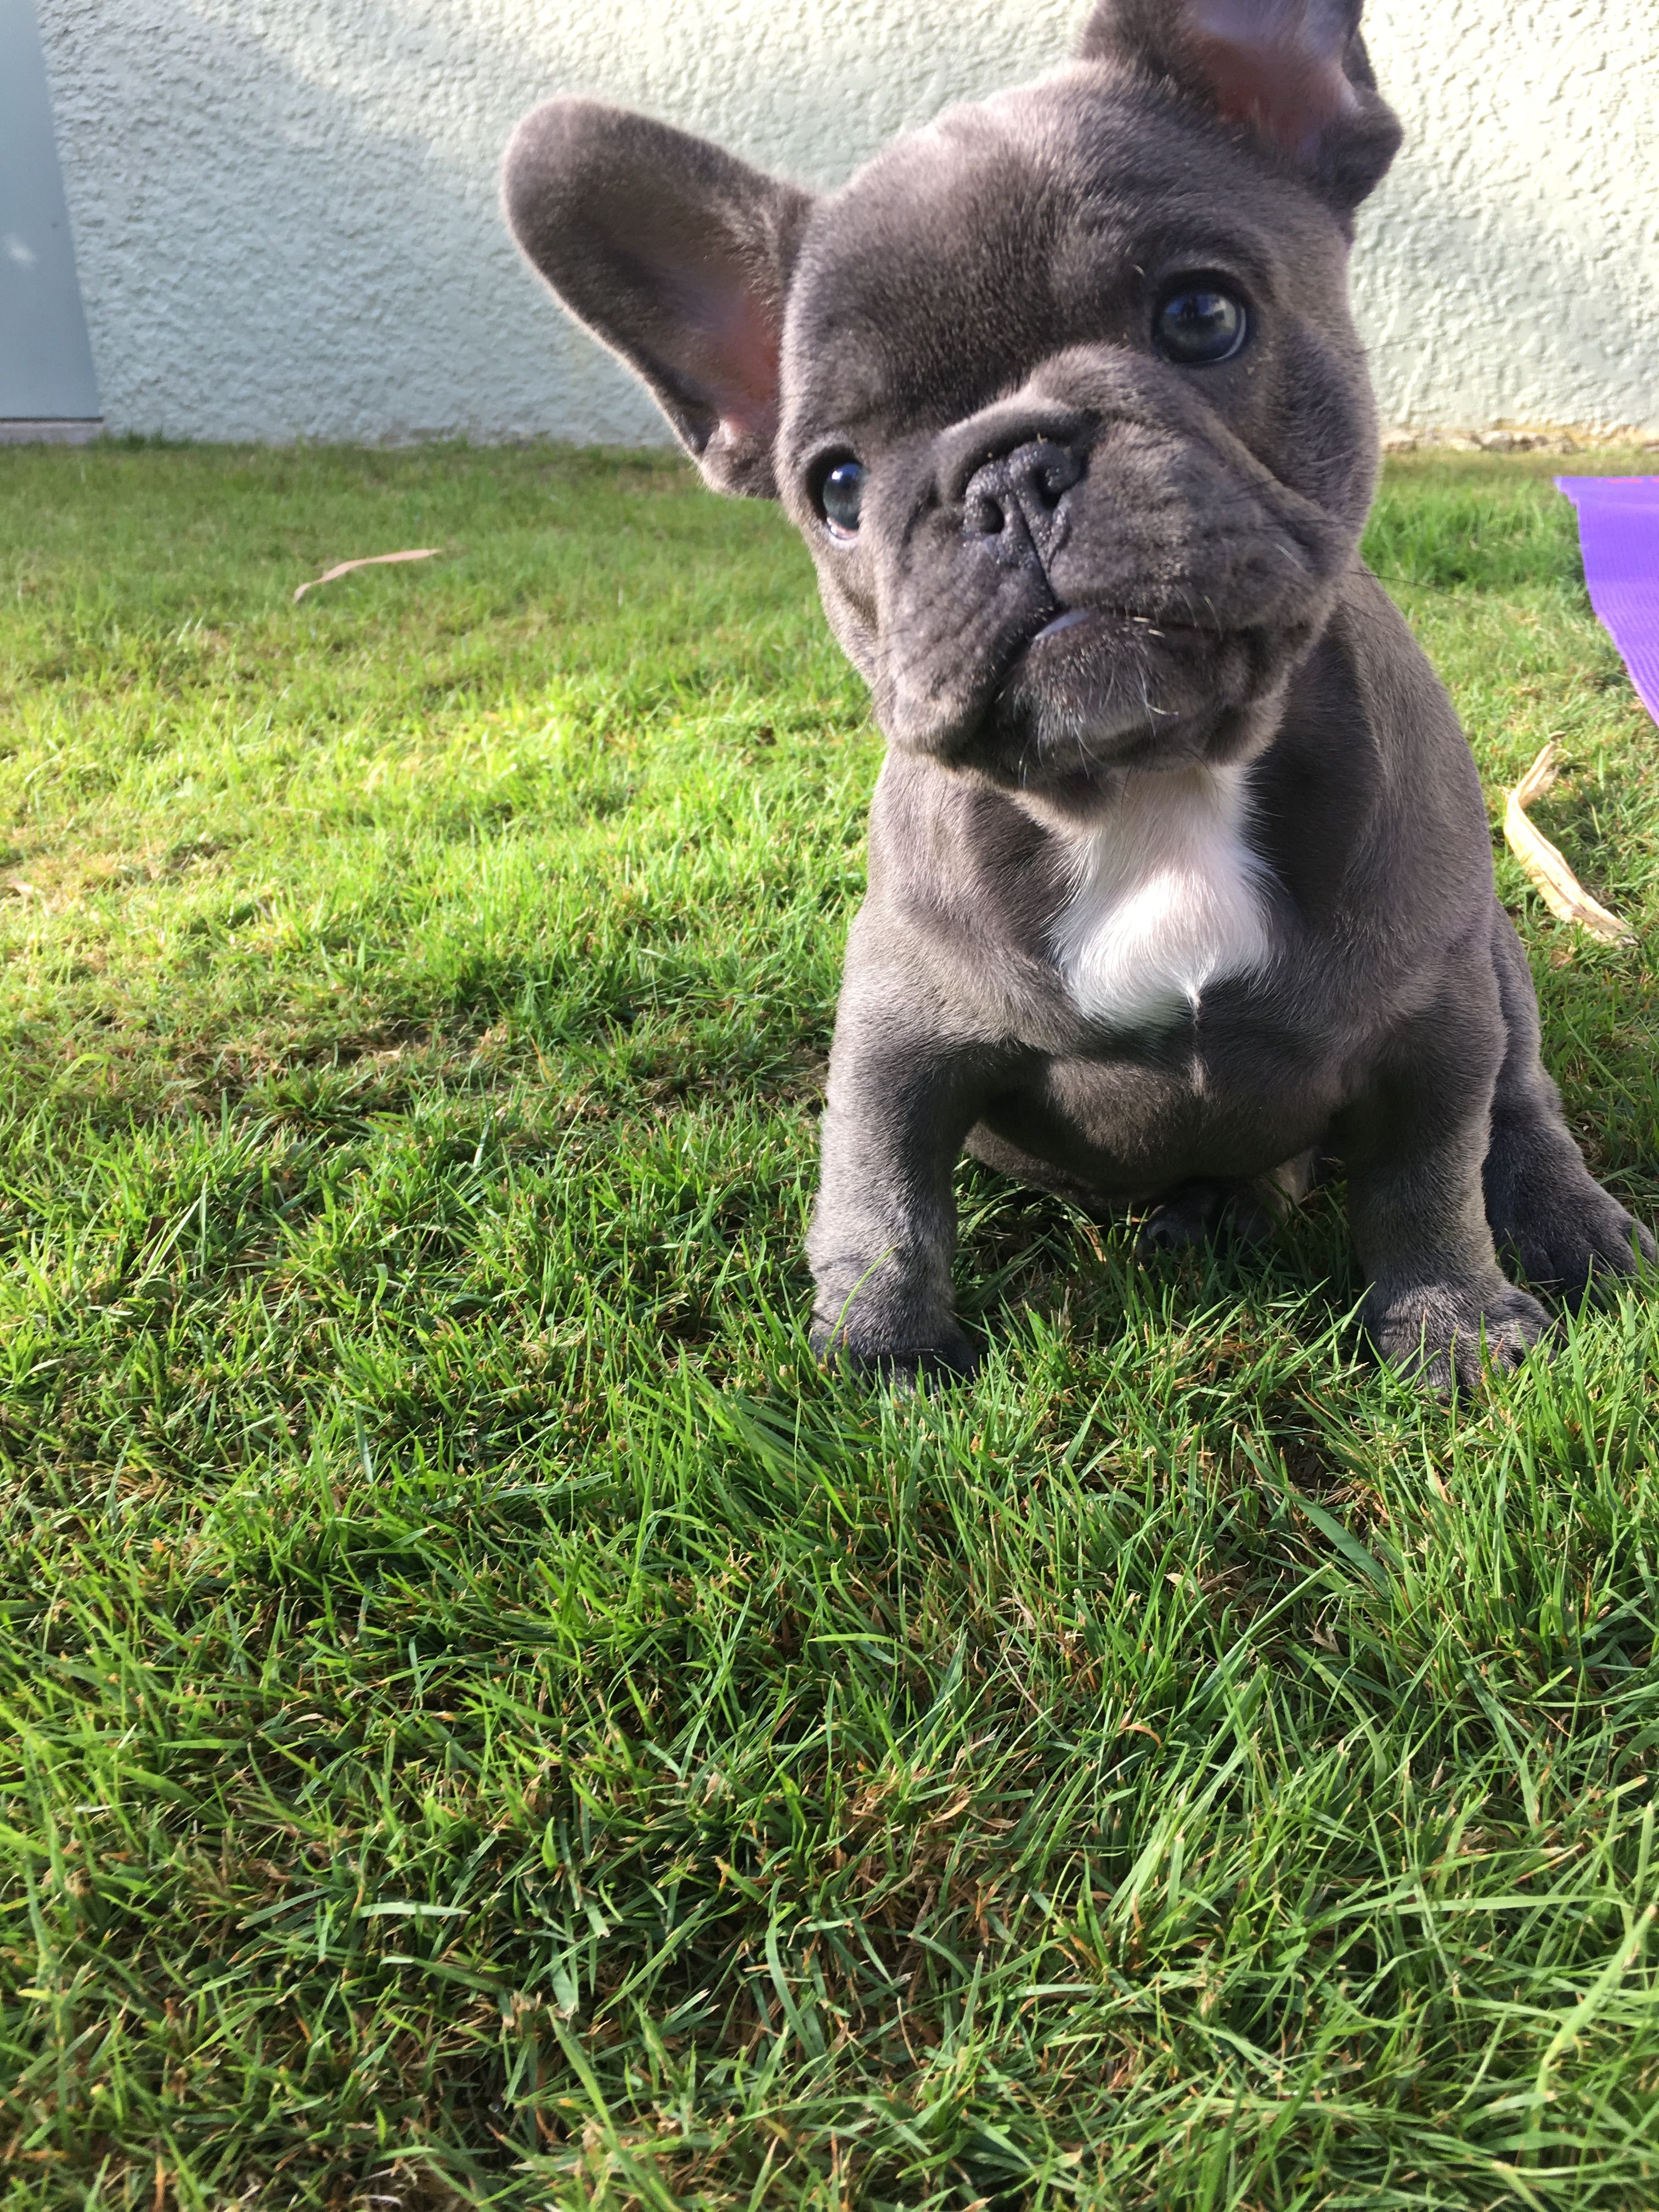 My Darling Margot The 8 Week Old French Bulldog Pup Bulldog Puppies French Bulldog Dog French Bulldog Puppies